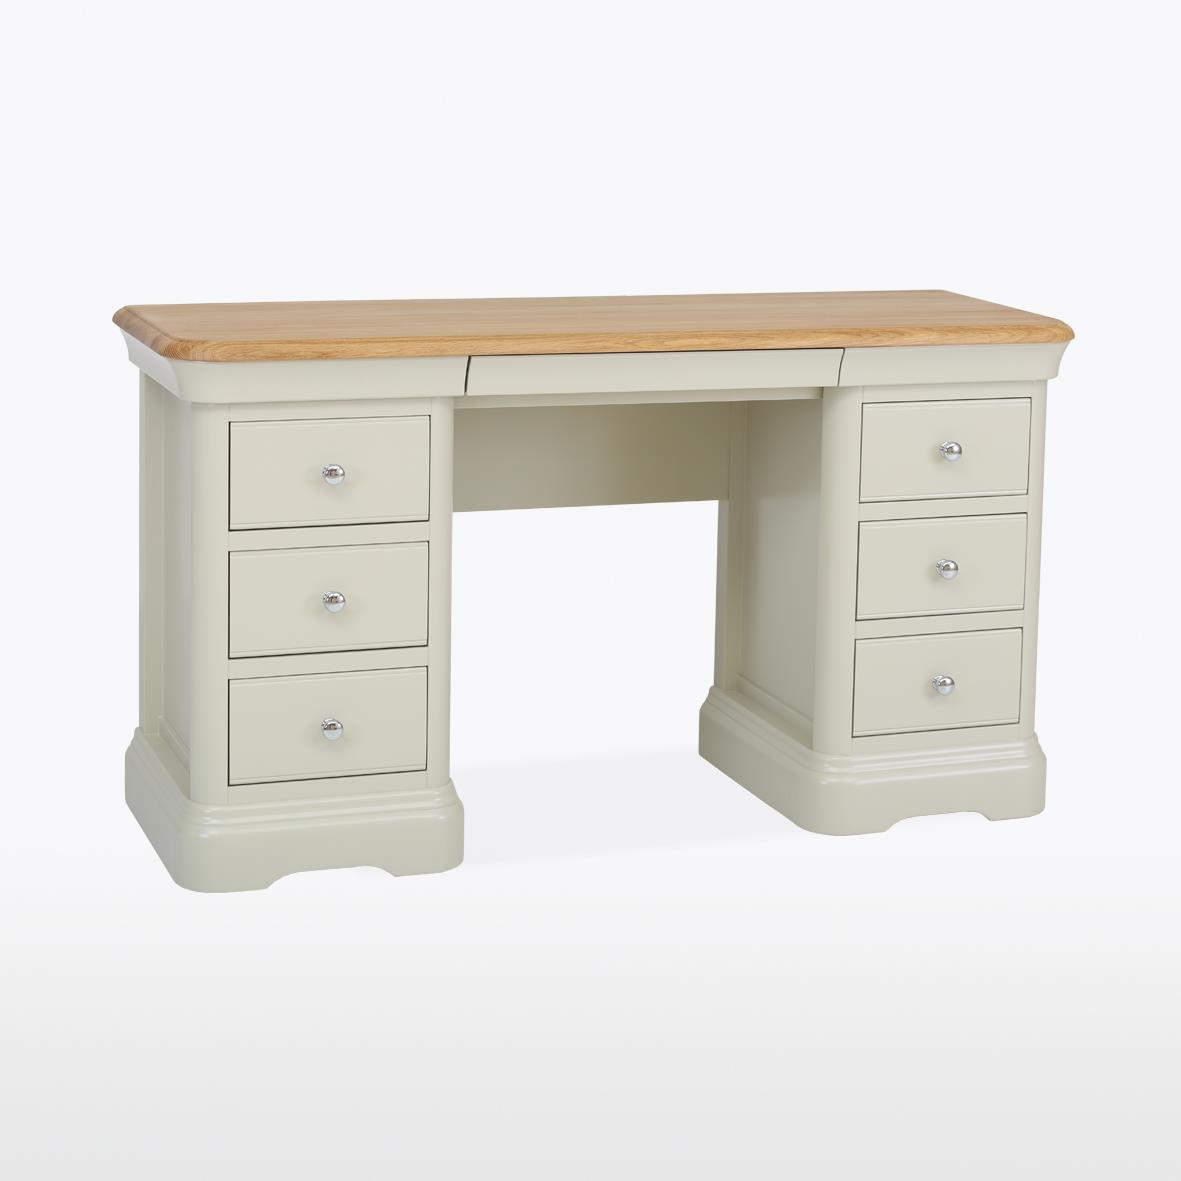 CROMWELL - Double Pedestal Dressing Table  CRO815